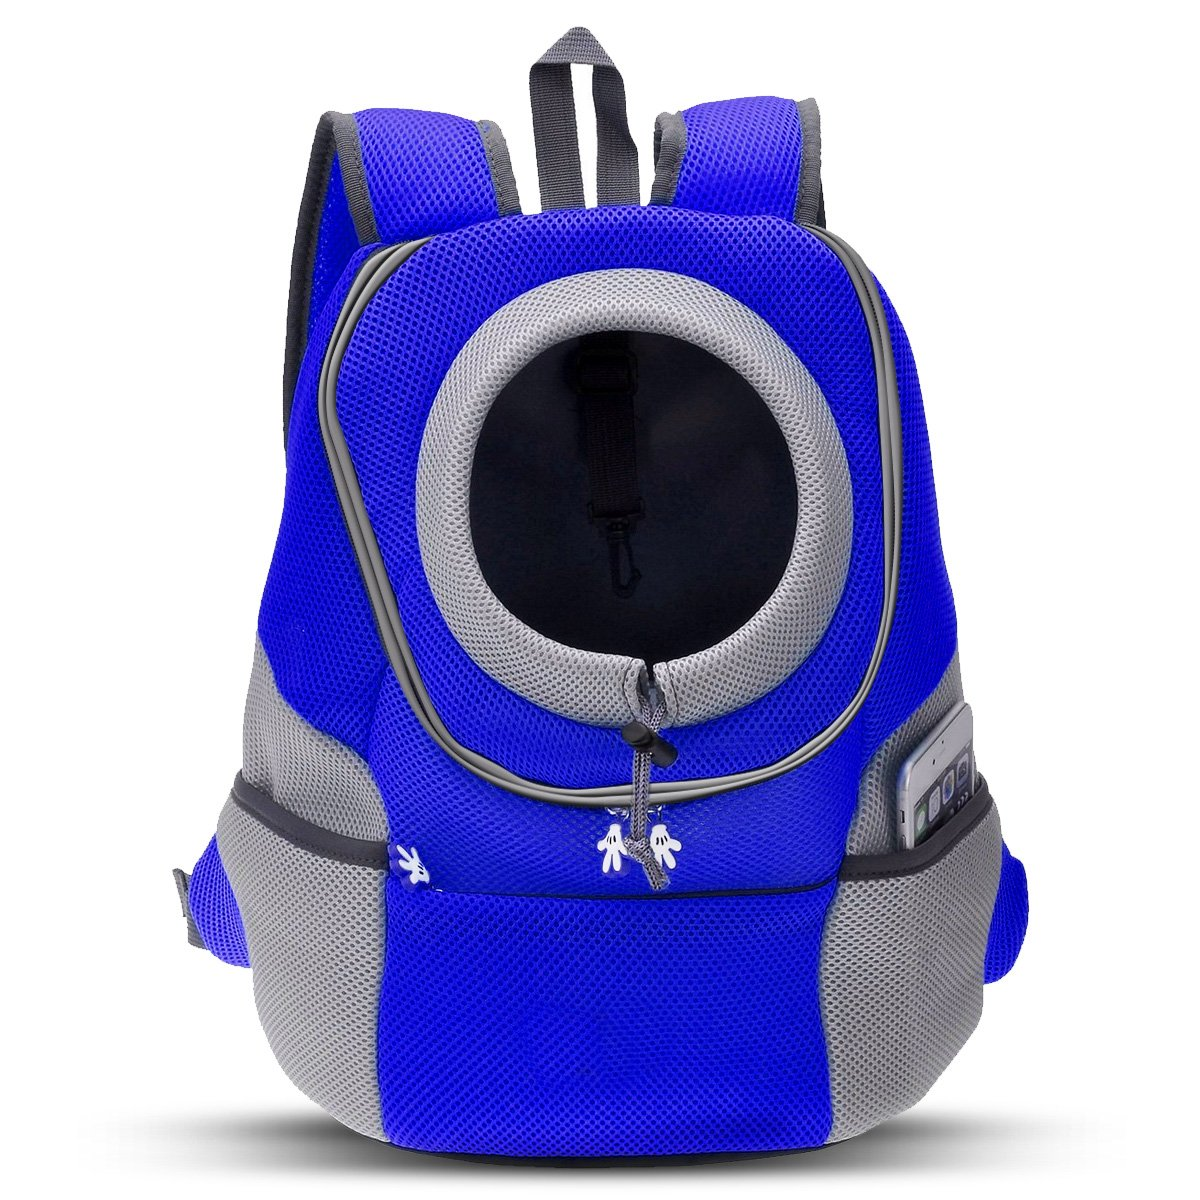 bluee Large bluee Large PETCUTE Premium Pet Carrier Backpack Pouch for Cats Dogs Puppy Holder Bag Travel Shoulder Bags Airline Approved for Bike Hiking Outdoor bluee